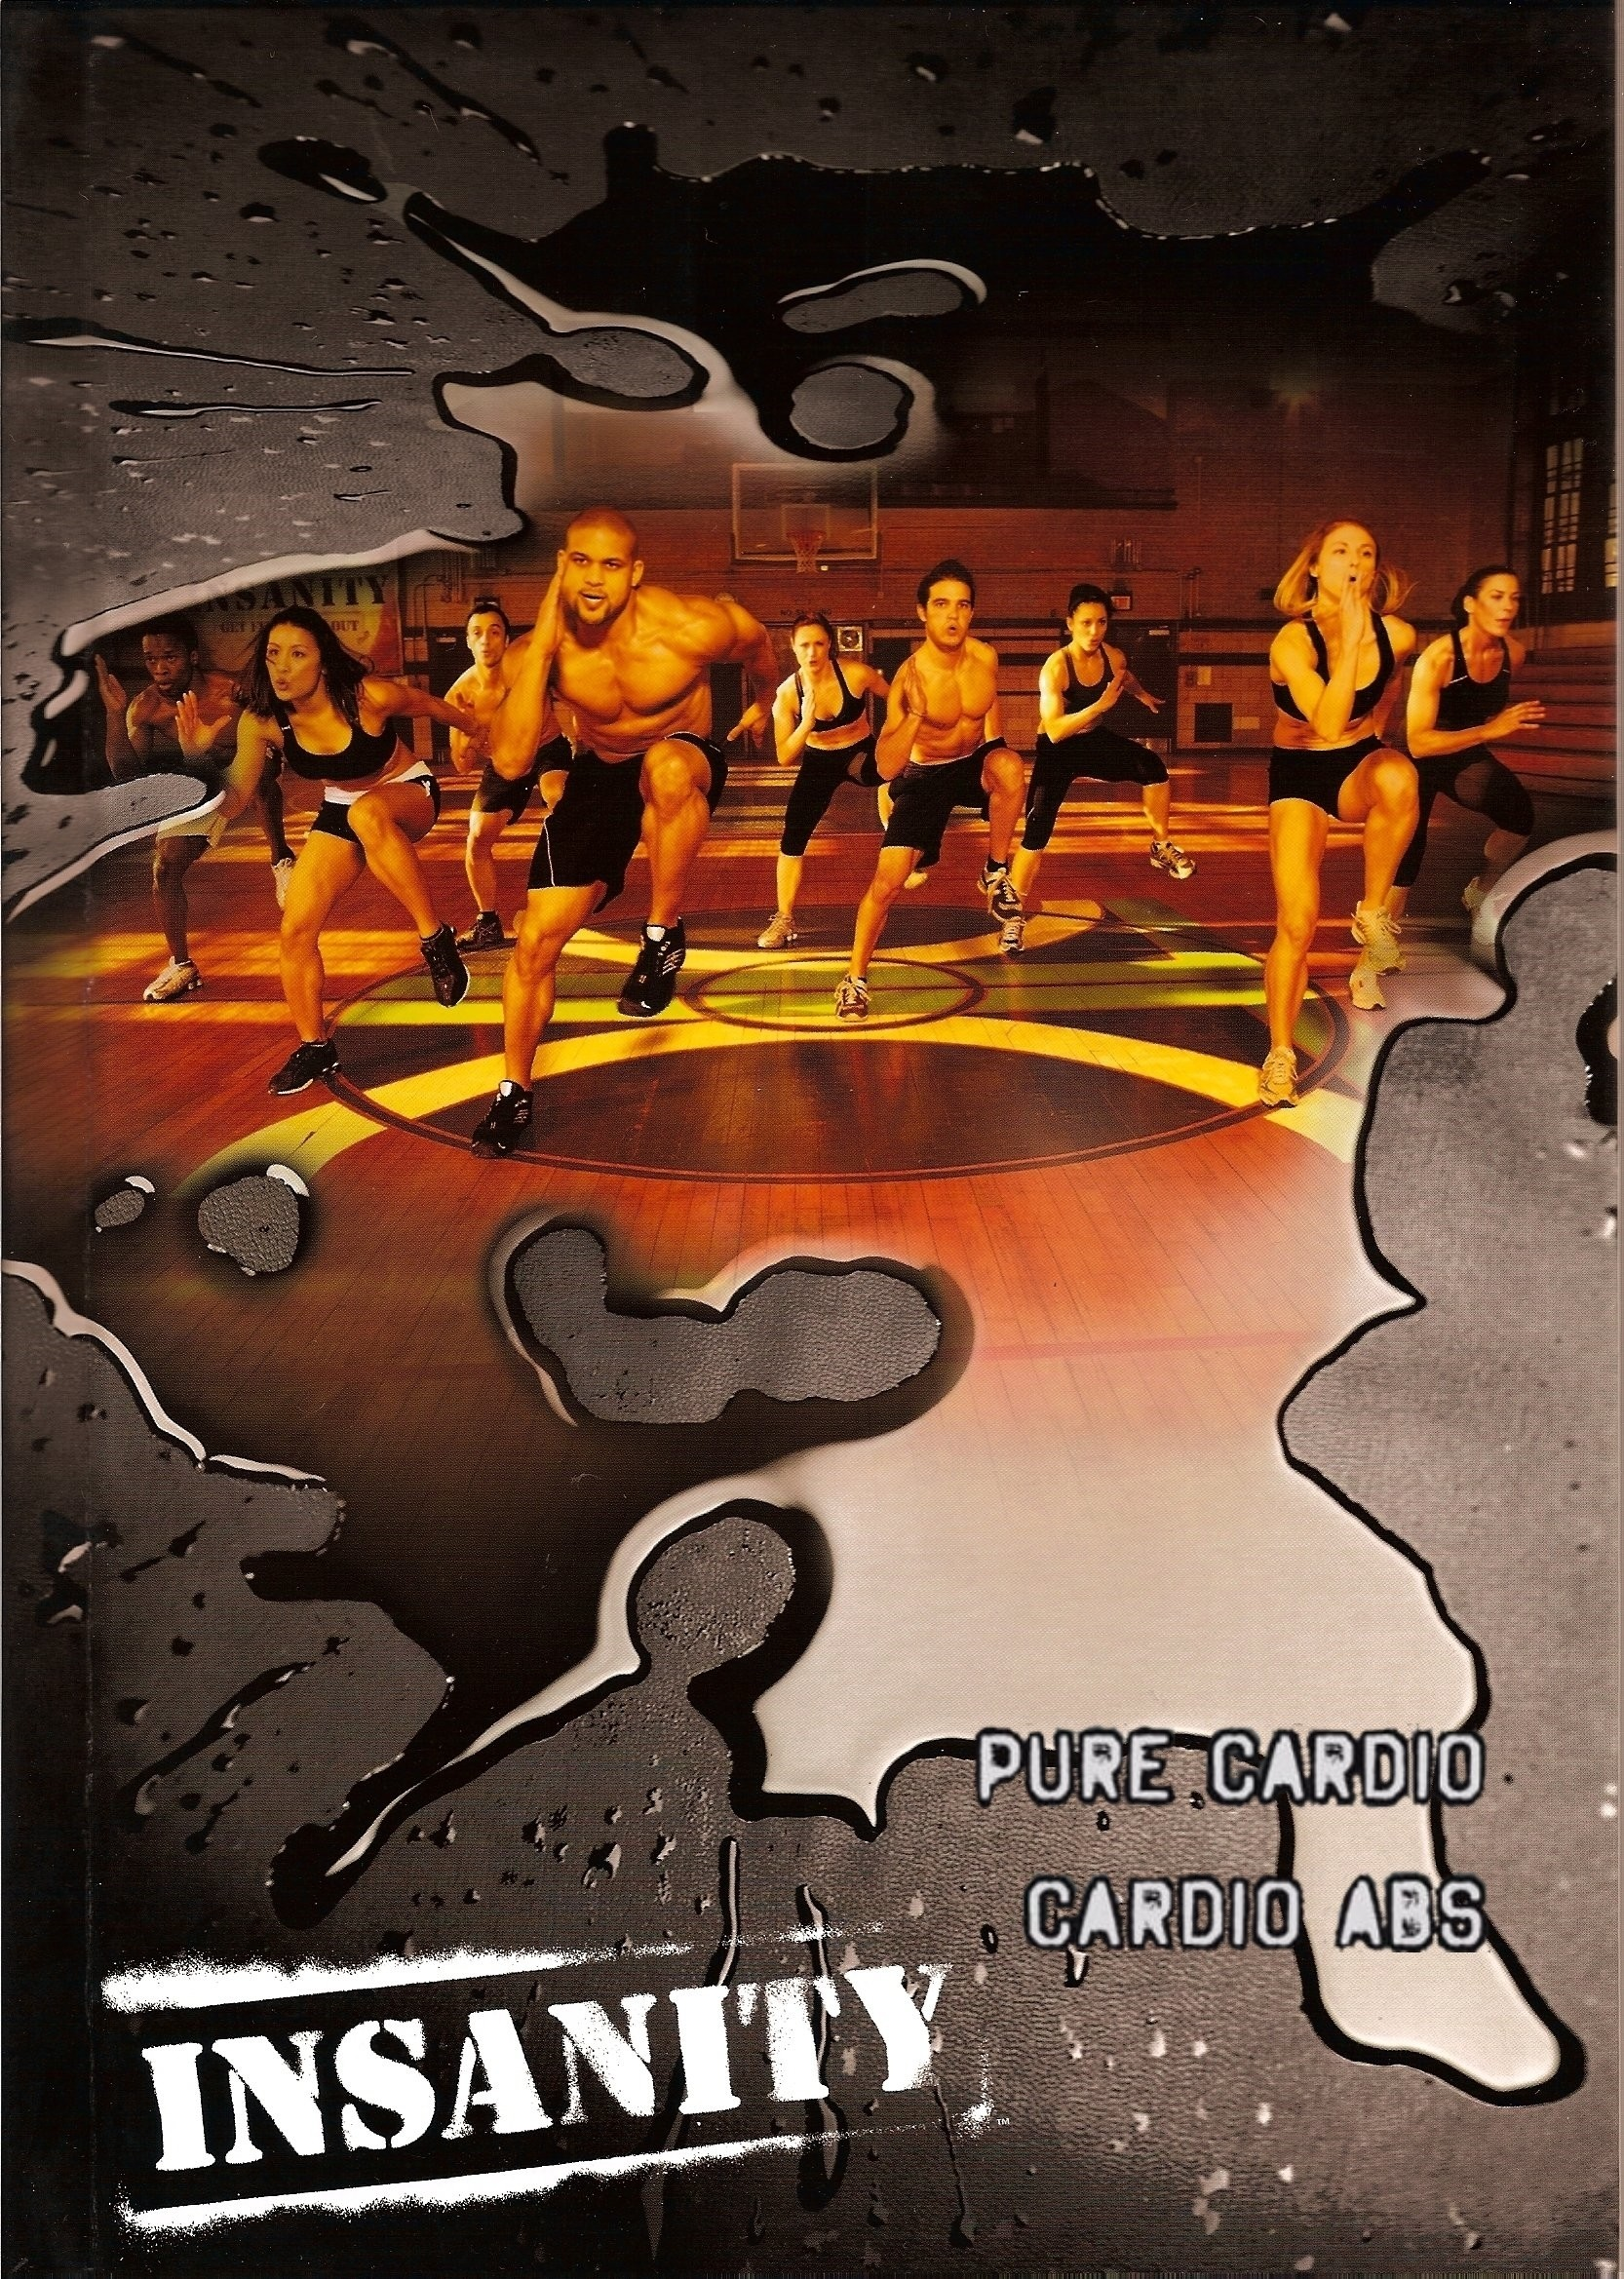 Watch Insanity: Pure Cardio & Cardio Abs (2009) Free Online